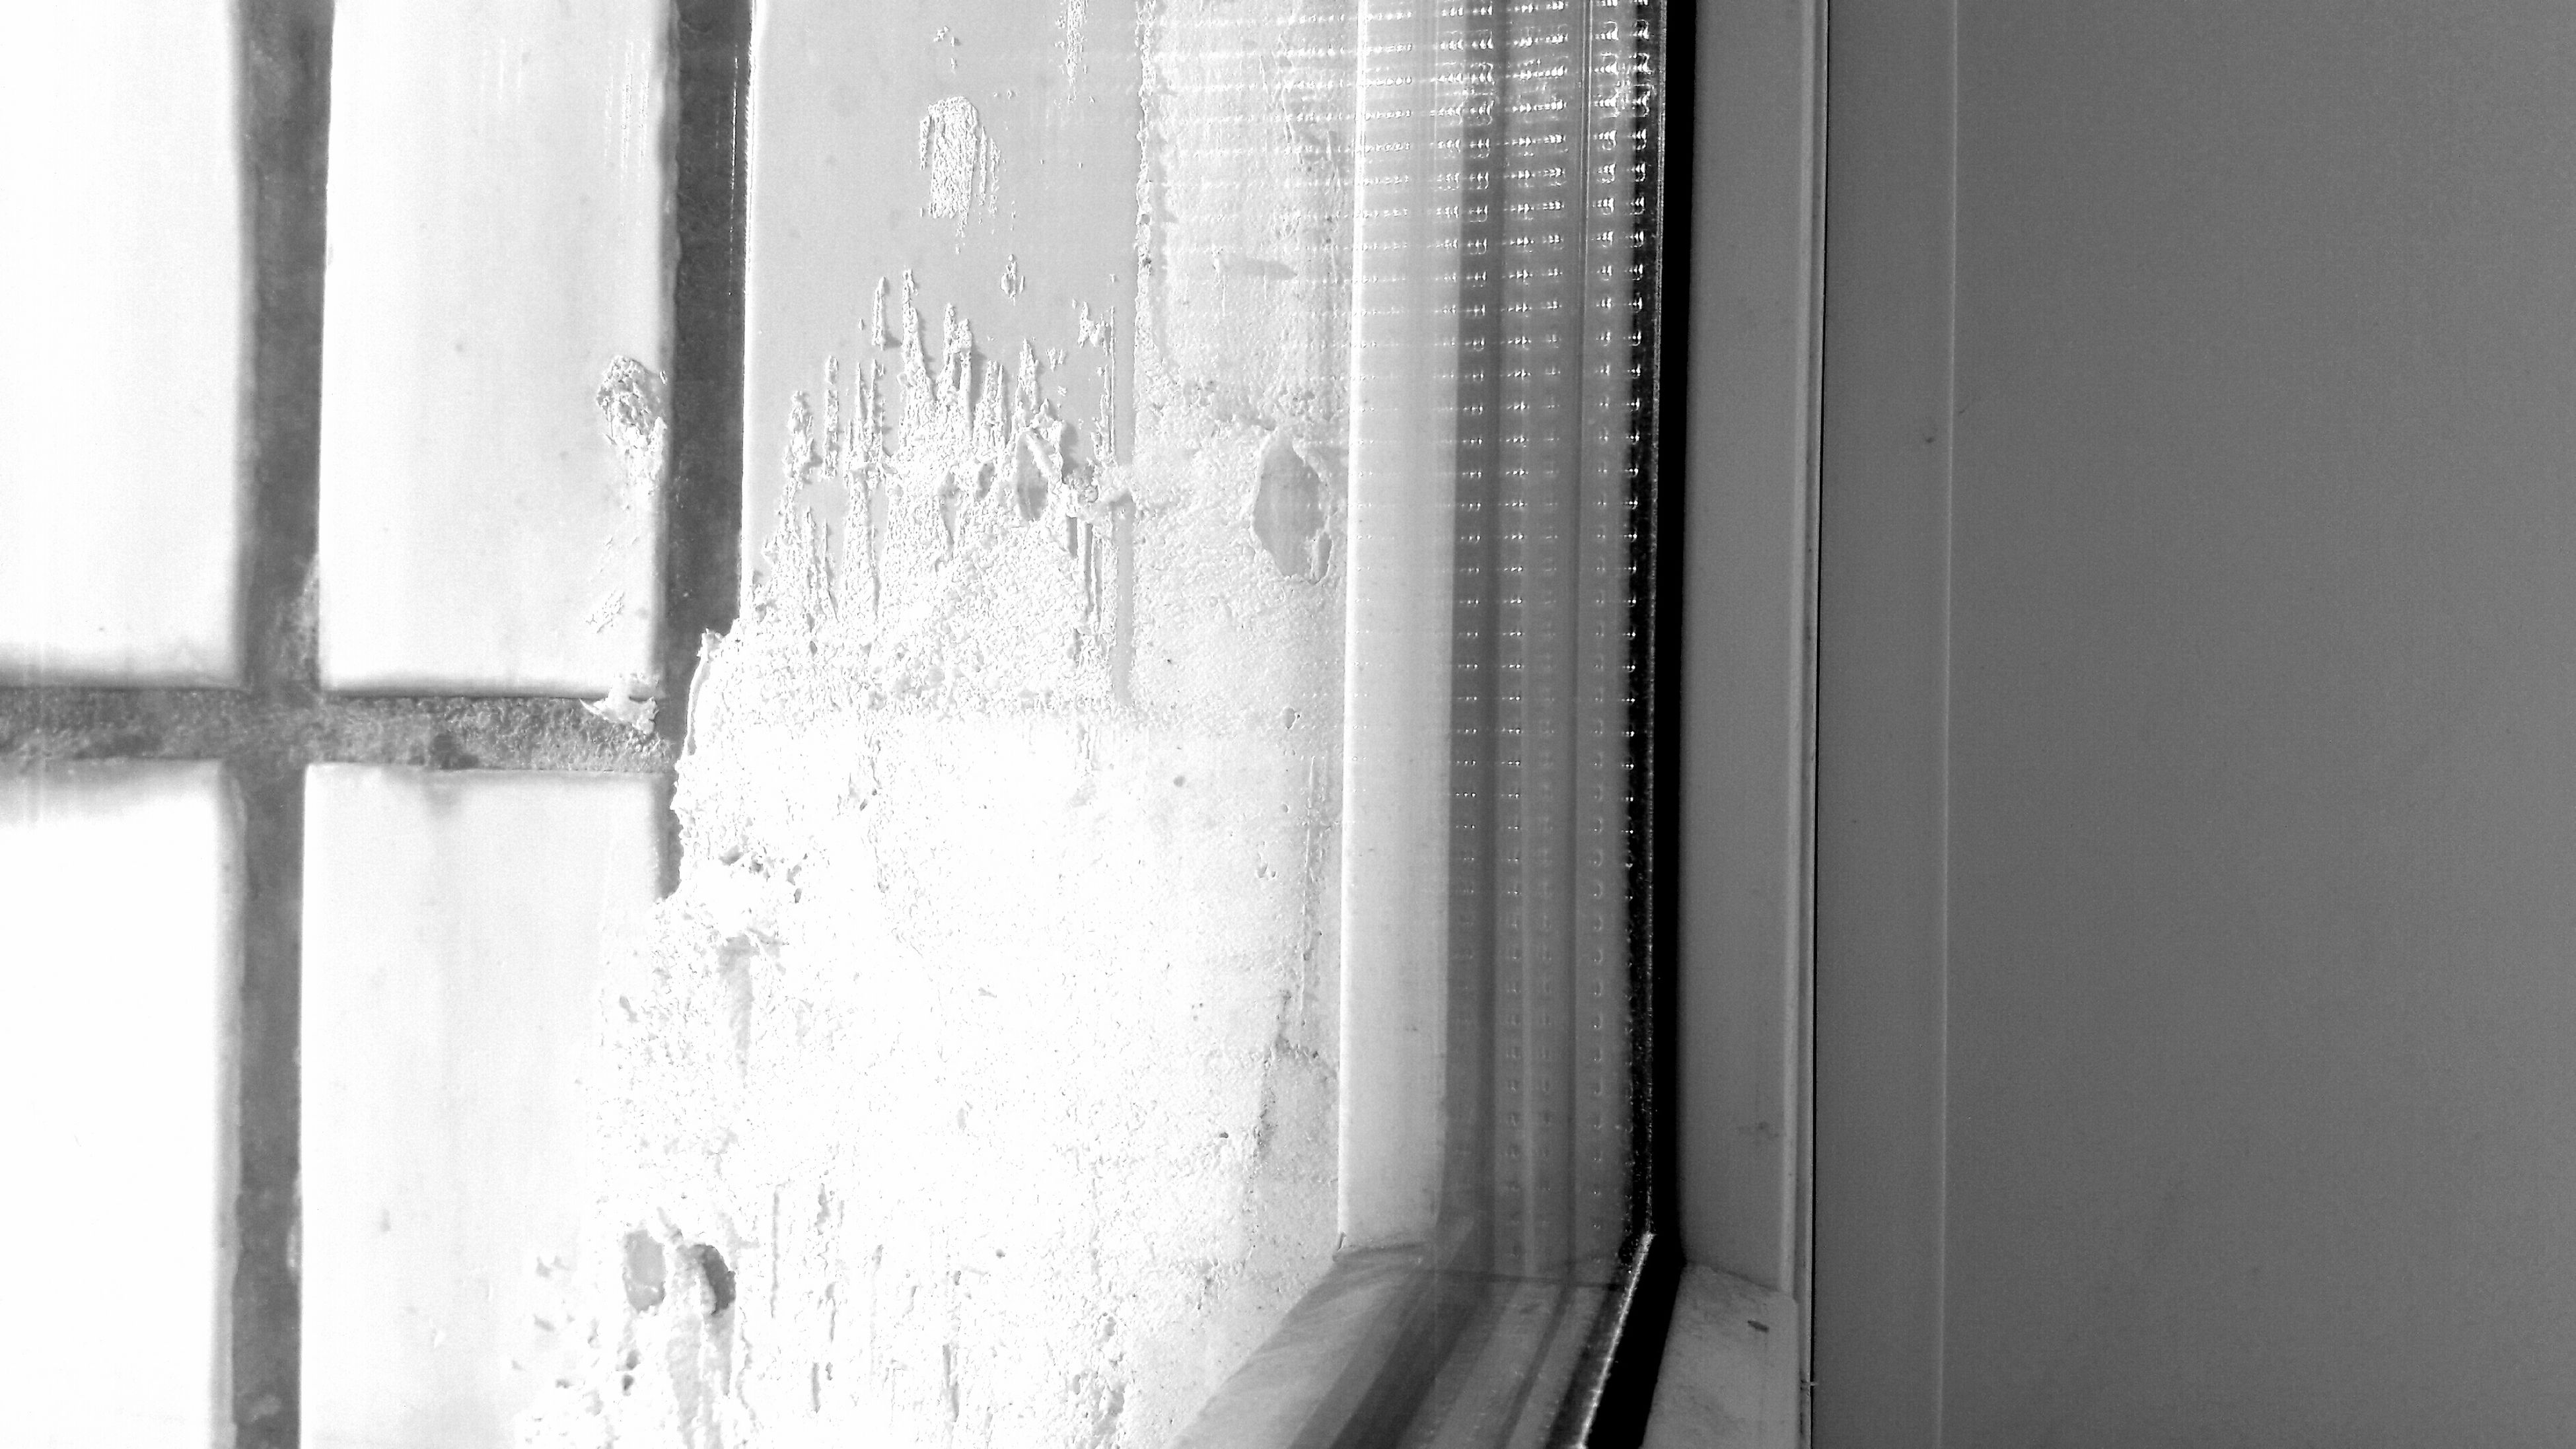 window, glass - material, transparent, wet, indoors, curtain, day, cleaning, looking through window, close-up, full frame, no people, backgrounds, drapes, window washer, water, frosted glass, hygiene, ajar